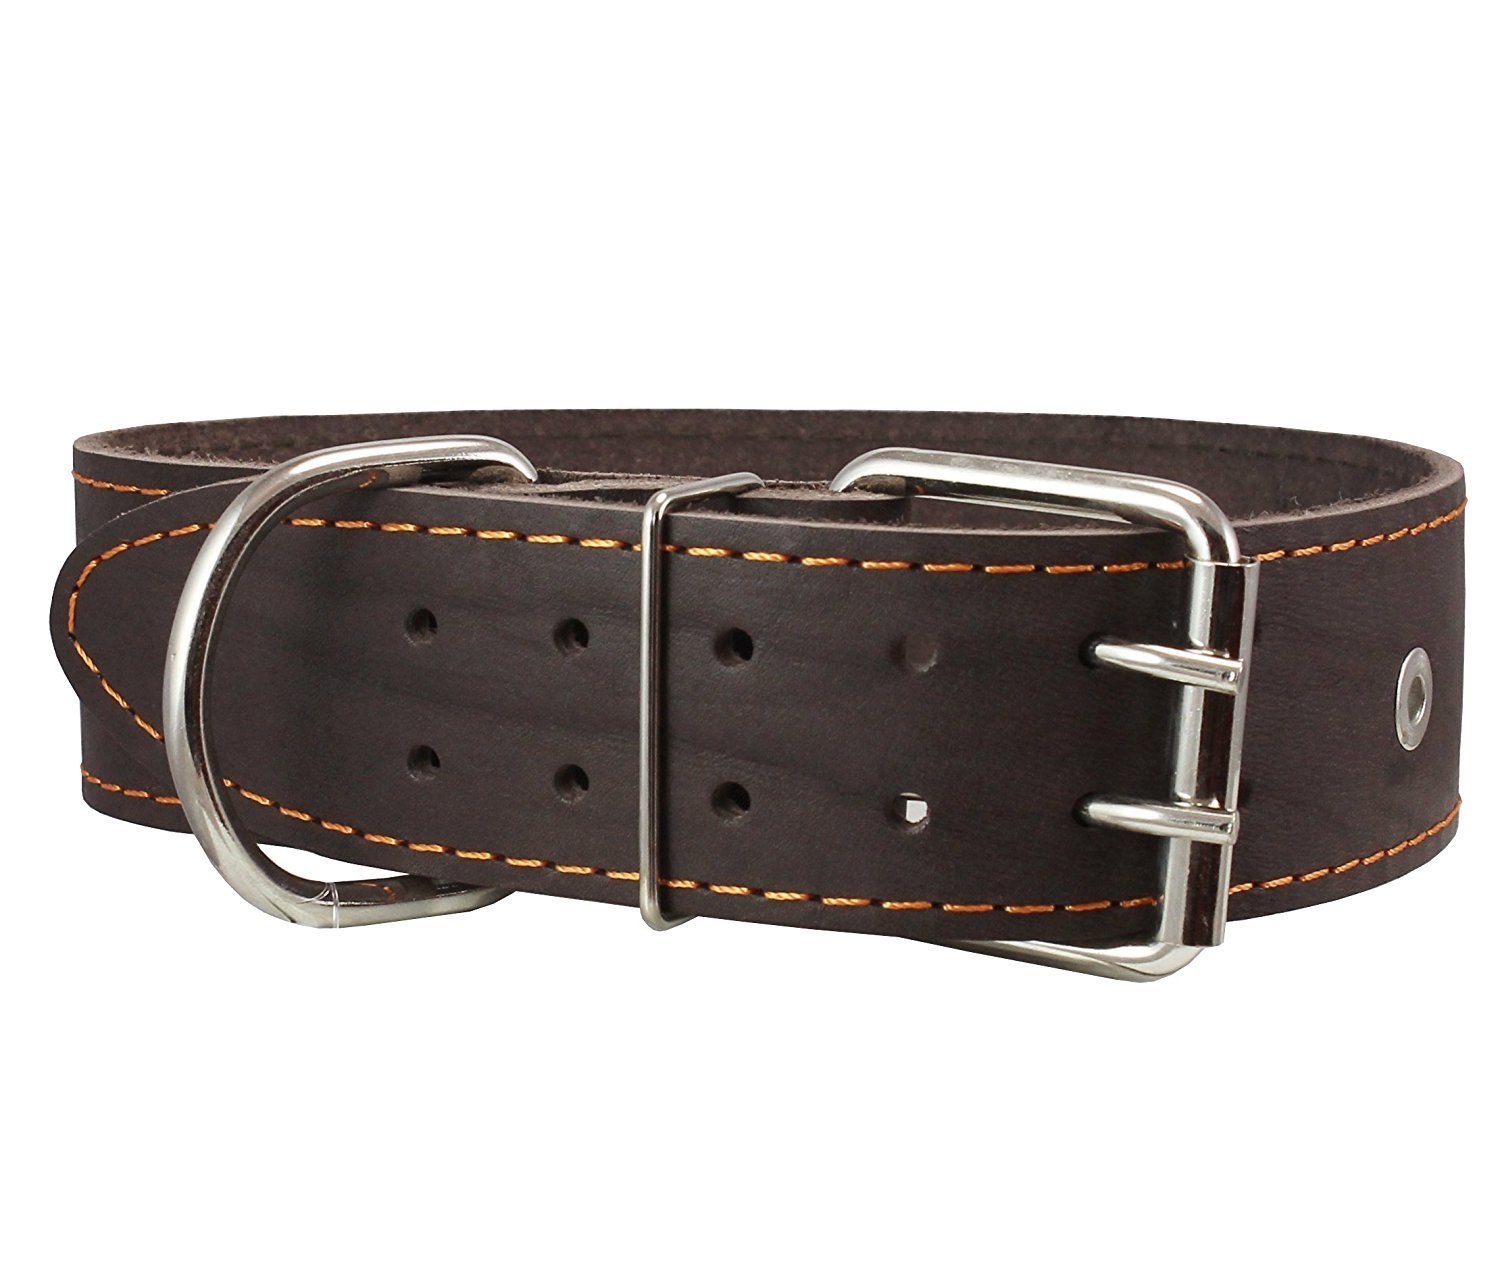 High Quality Genuine Leather Studded Dog Collar, Brown, 1.75  Wide. Fits 18.5 -22  Neck.For Large Breeds Boxer, Pit Bull.